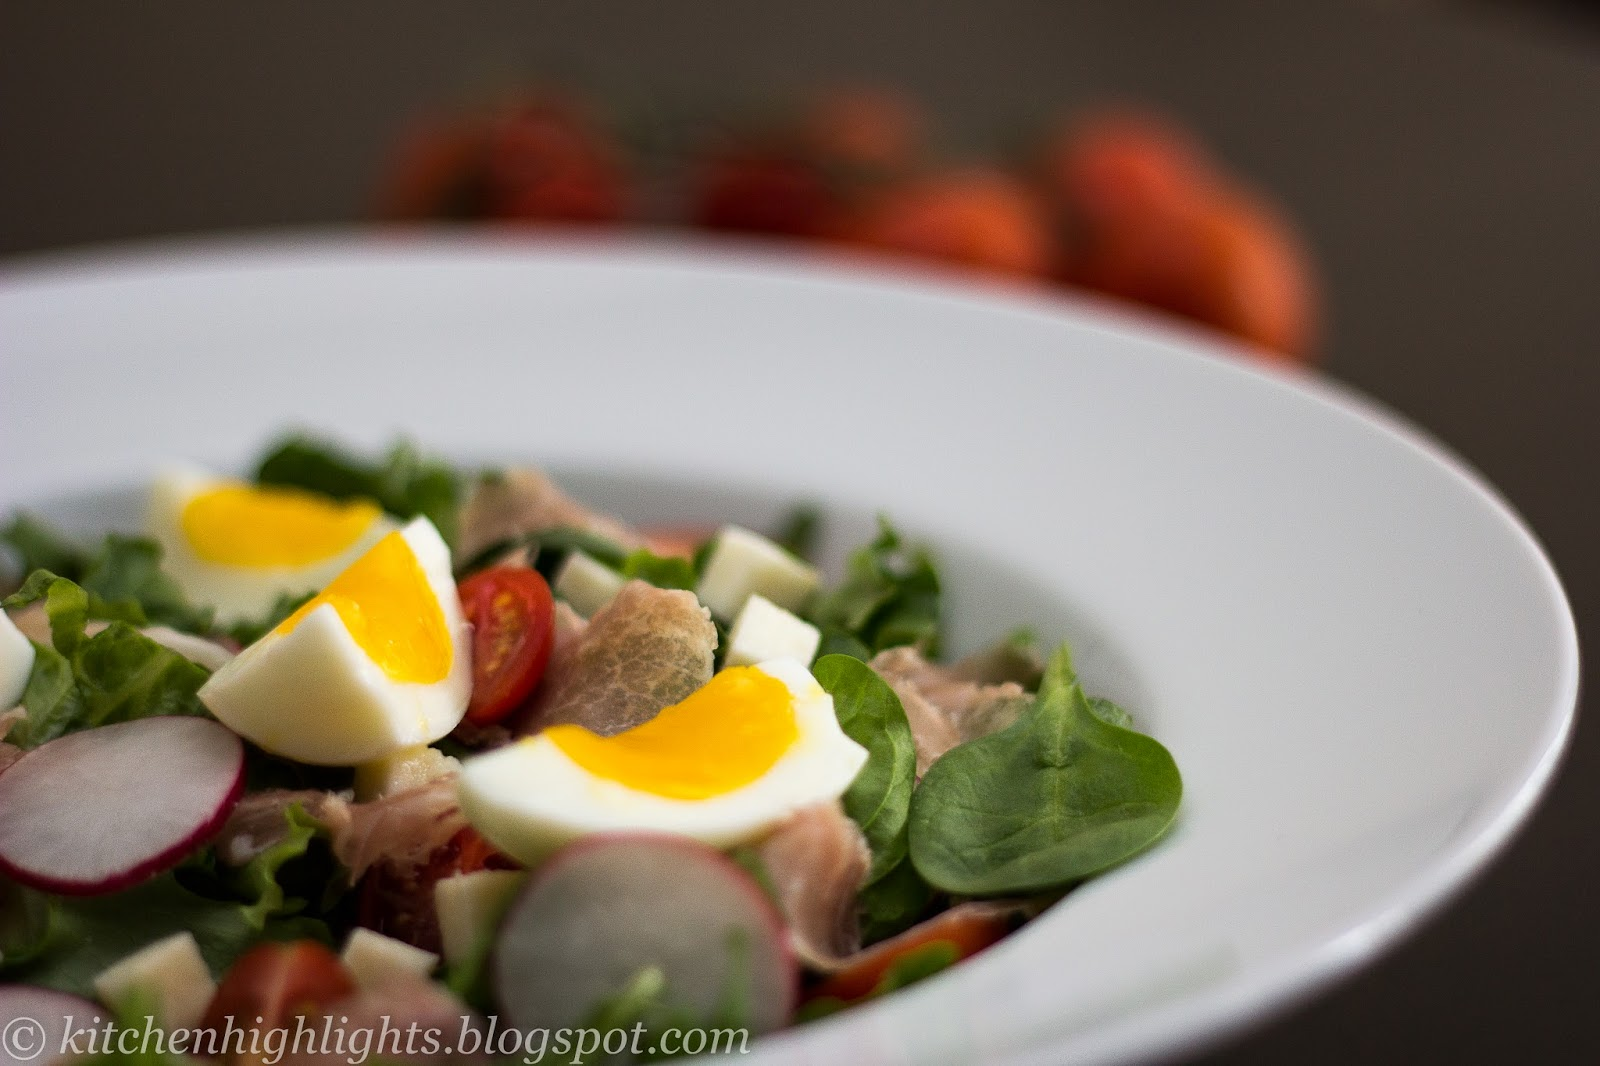 Prepared with fresh cherry tomatoes, lettuce, spinach, arugula, radishes, mozzarella, prosciutto and soft boiled eggs, this salad is light yet nourishing